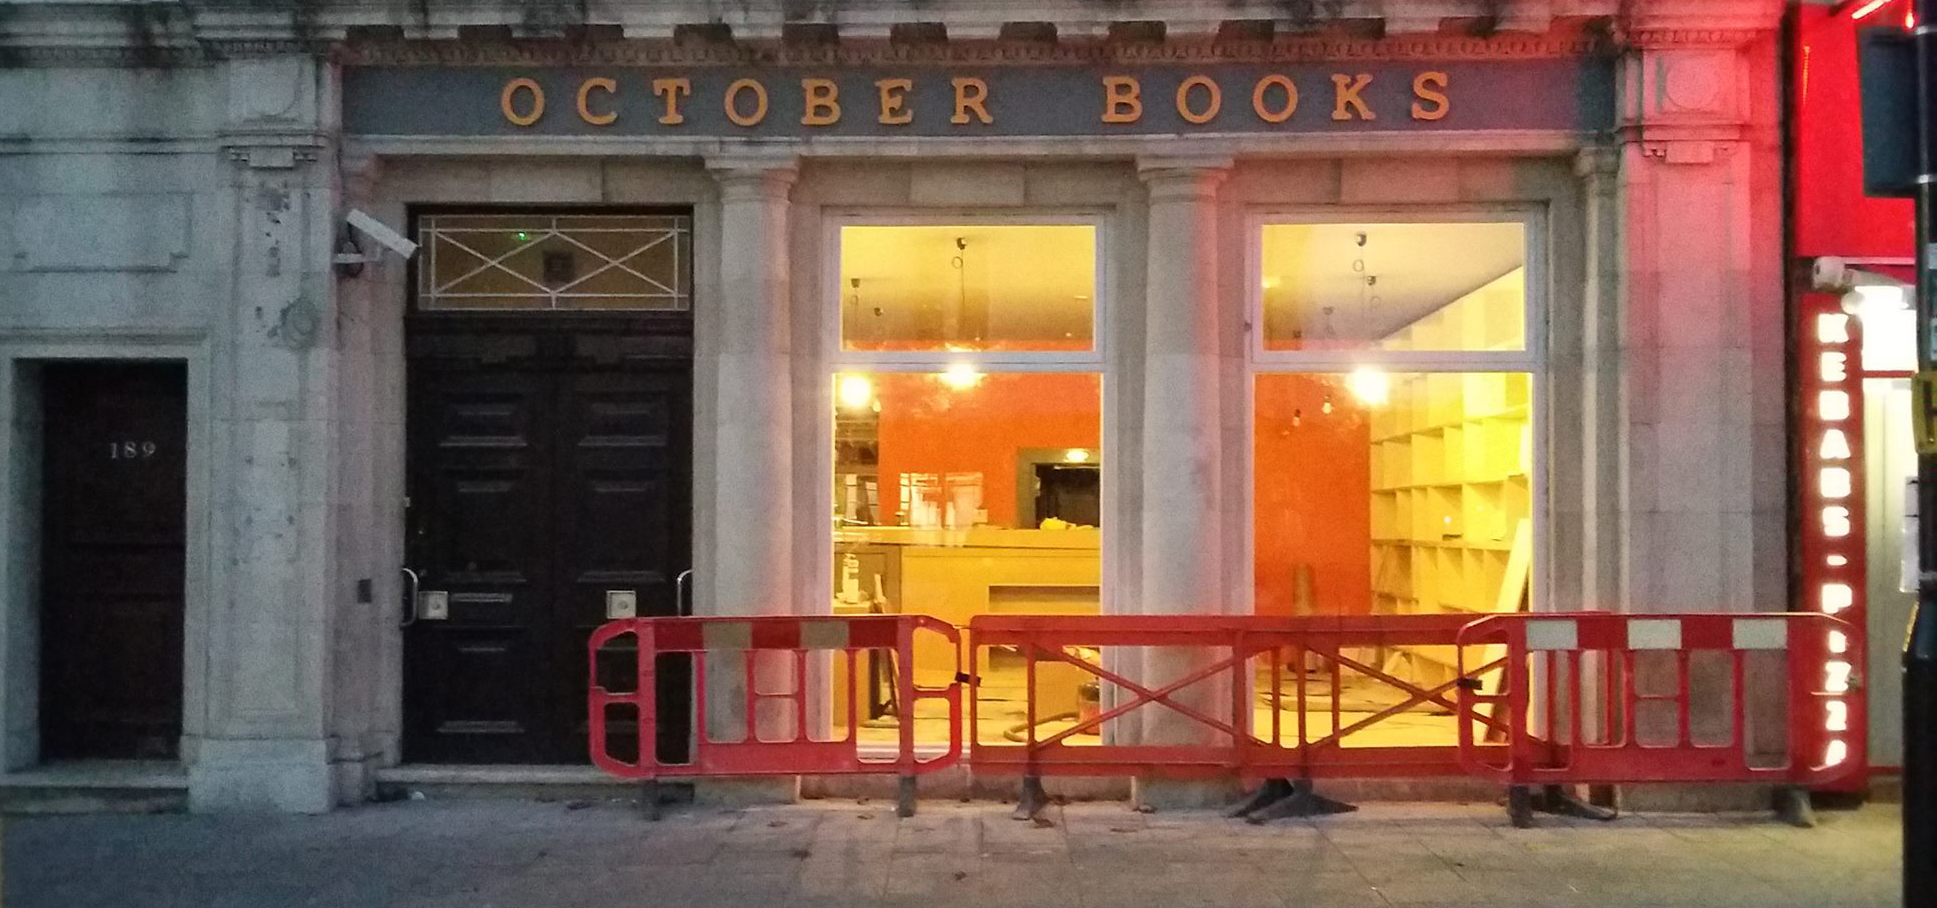 October Books' new site